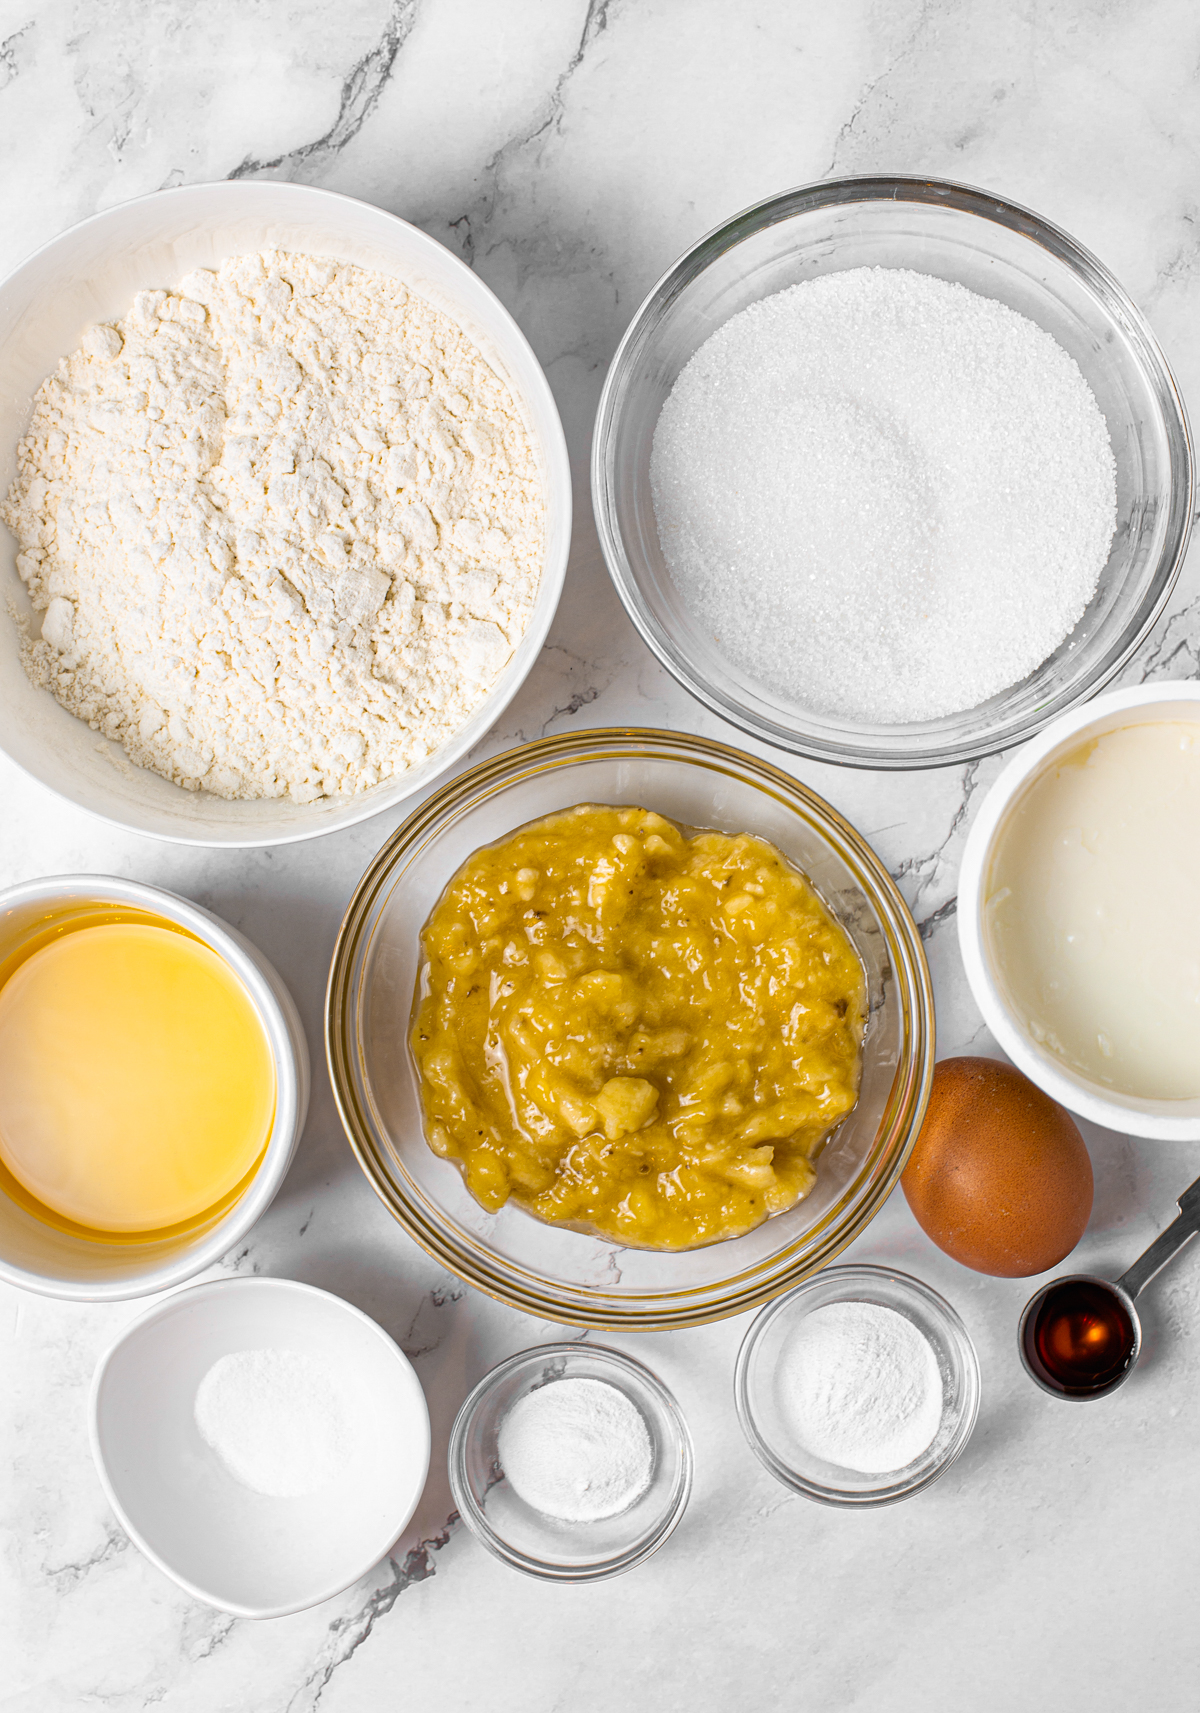 Ingredients needed to make Banana Snack Cake